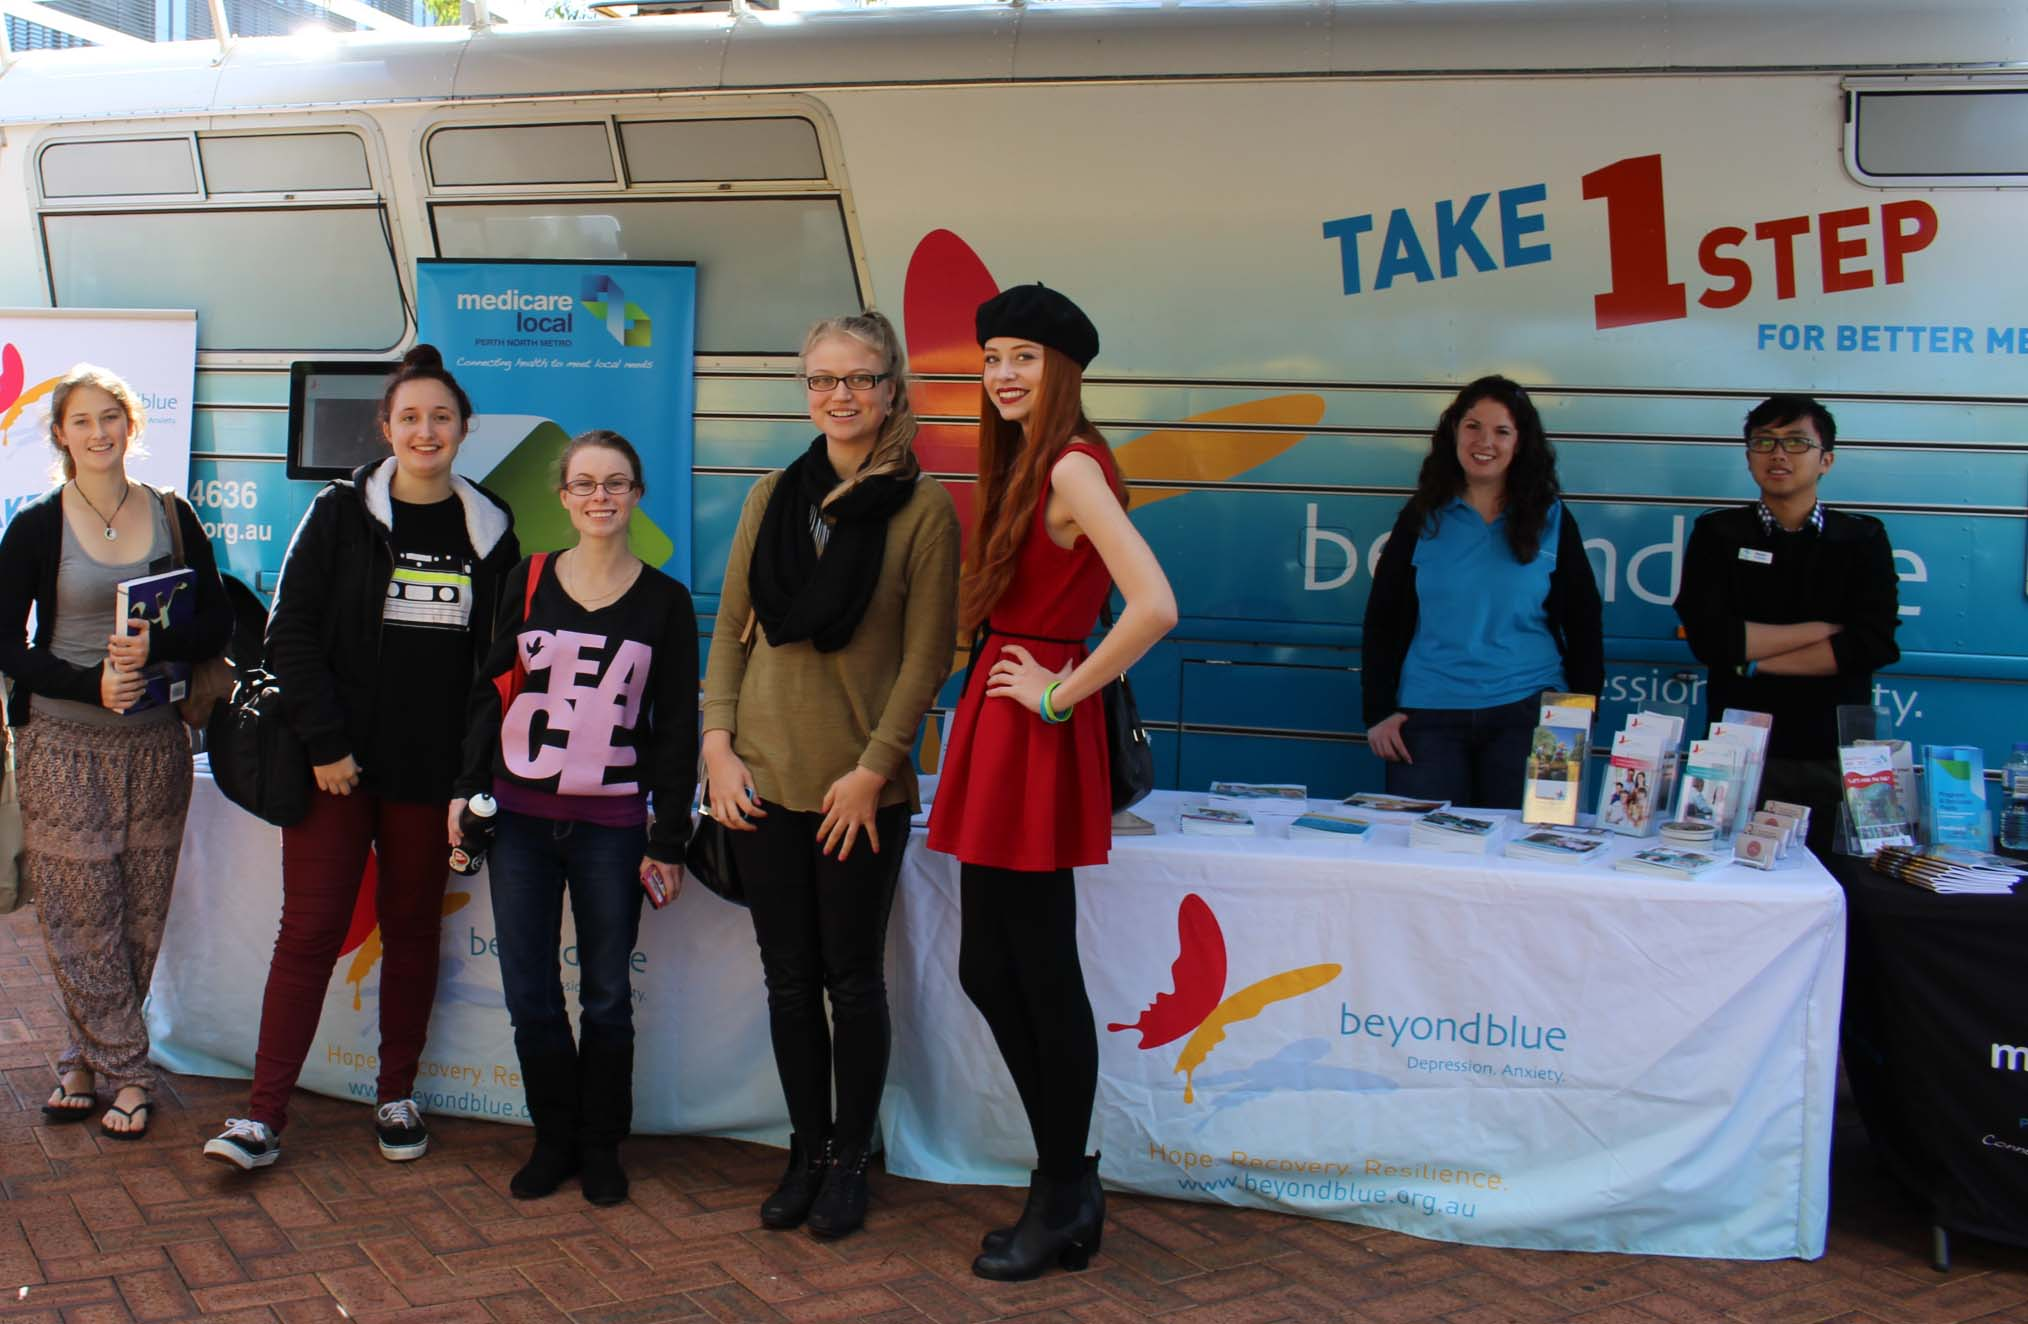 Edith Cowan Uni students visited the bus during its campus stop.